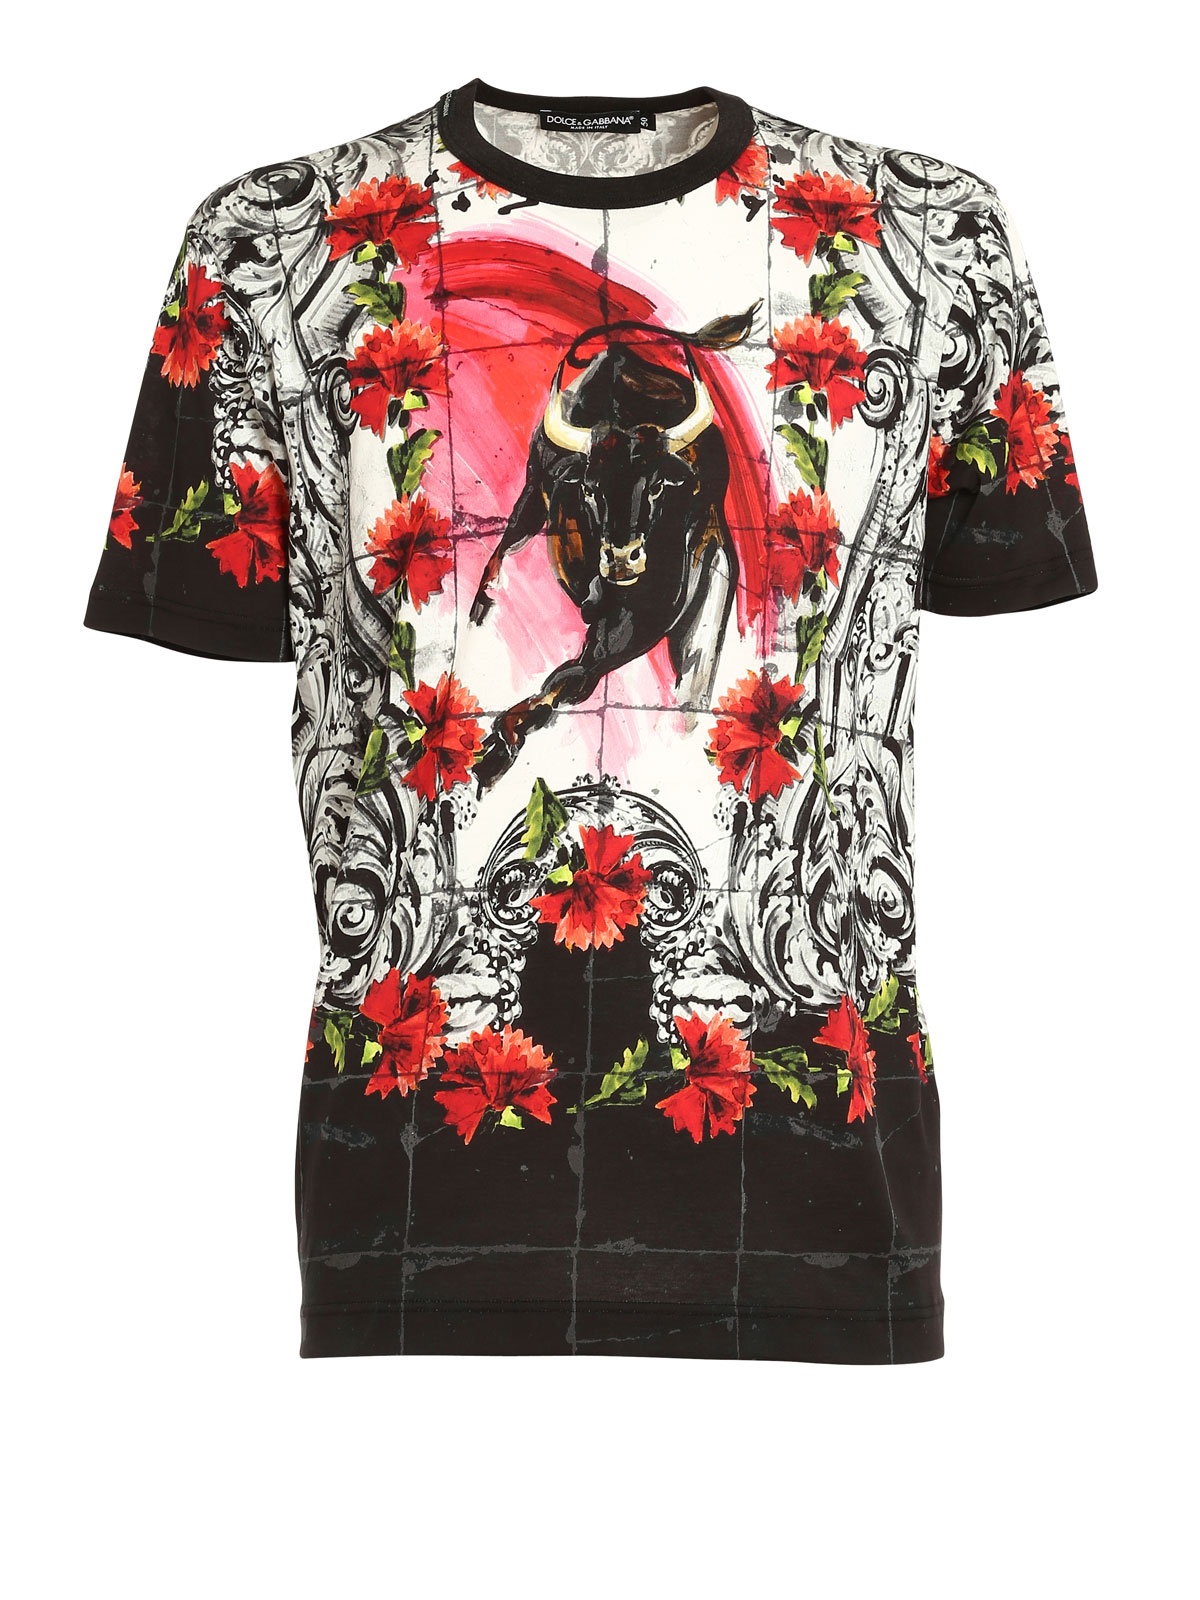 dolce--gabbana-t-shirts-carnation-and-bull-print-t-shirt-00000036264f00s001